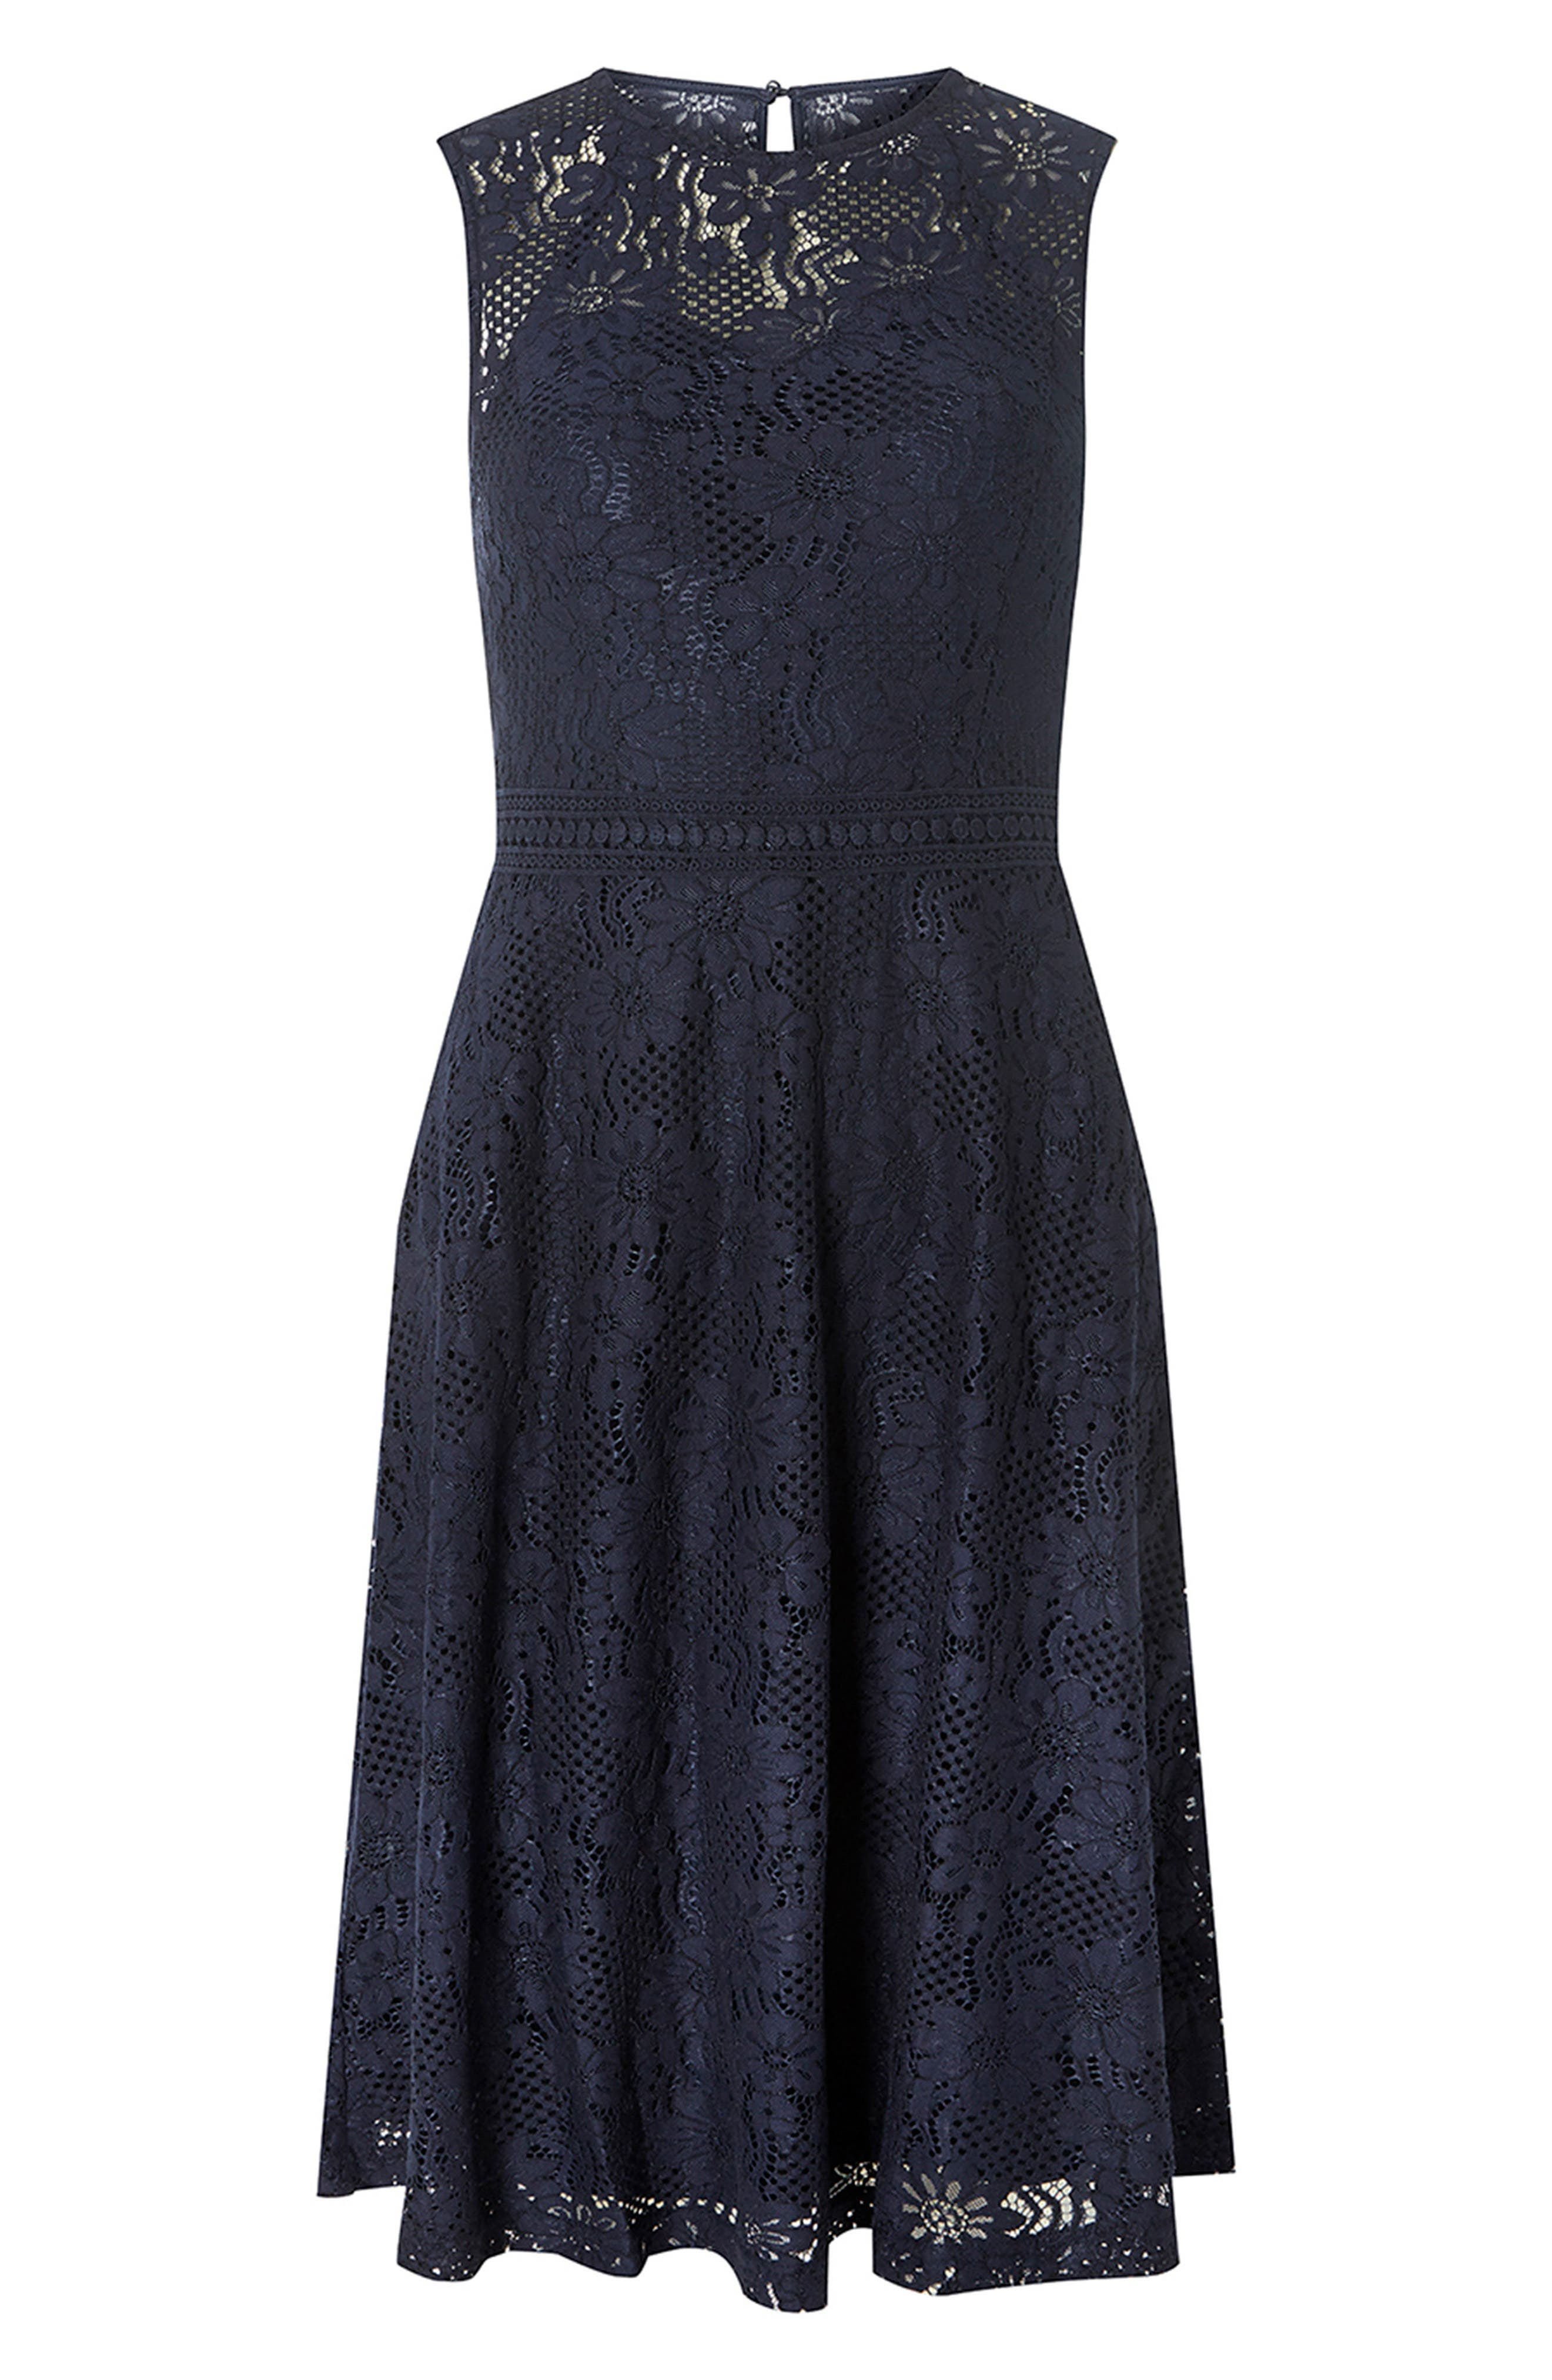 Adele Lace Fit & Flare Dress,                             Alternate thumbnail 4, color,                             400